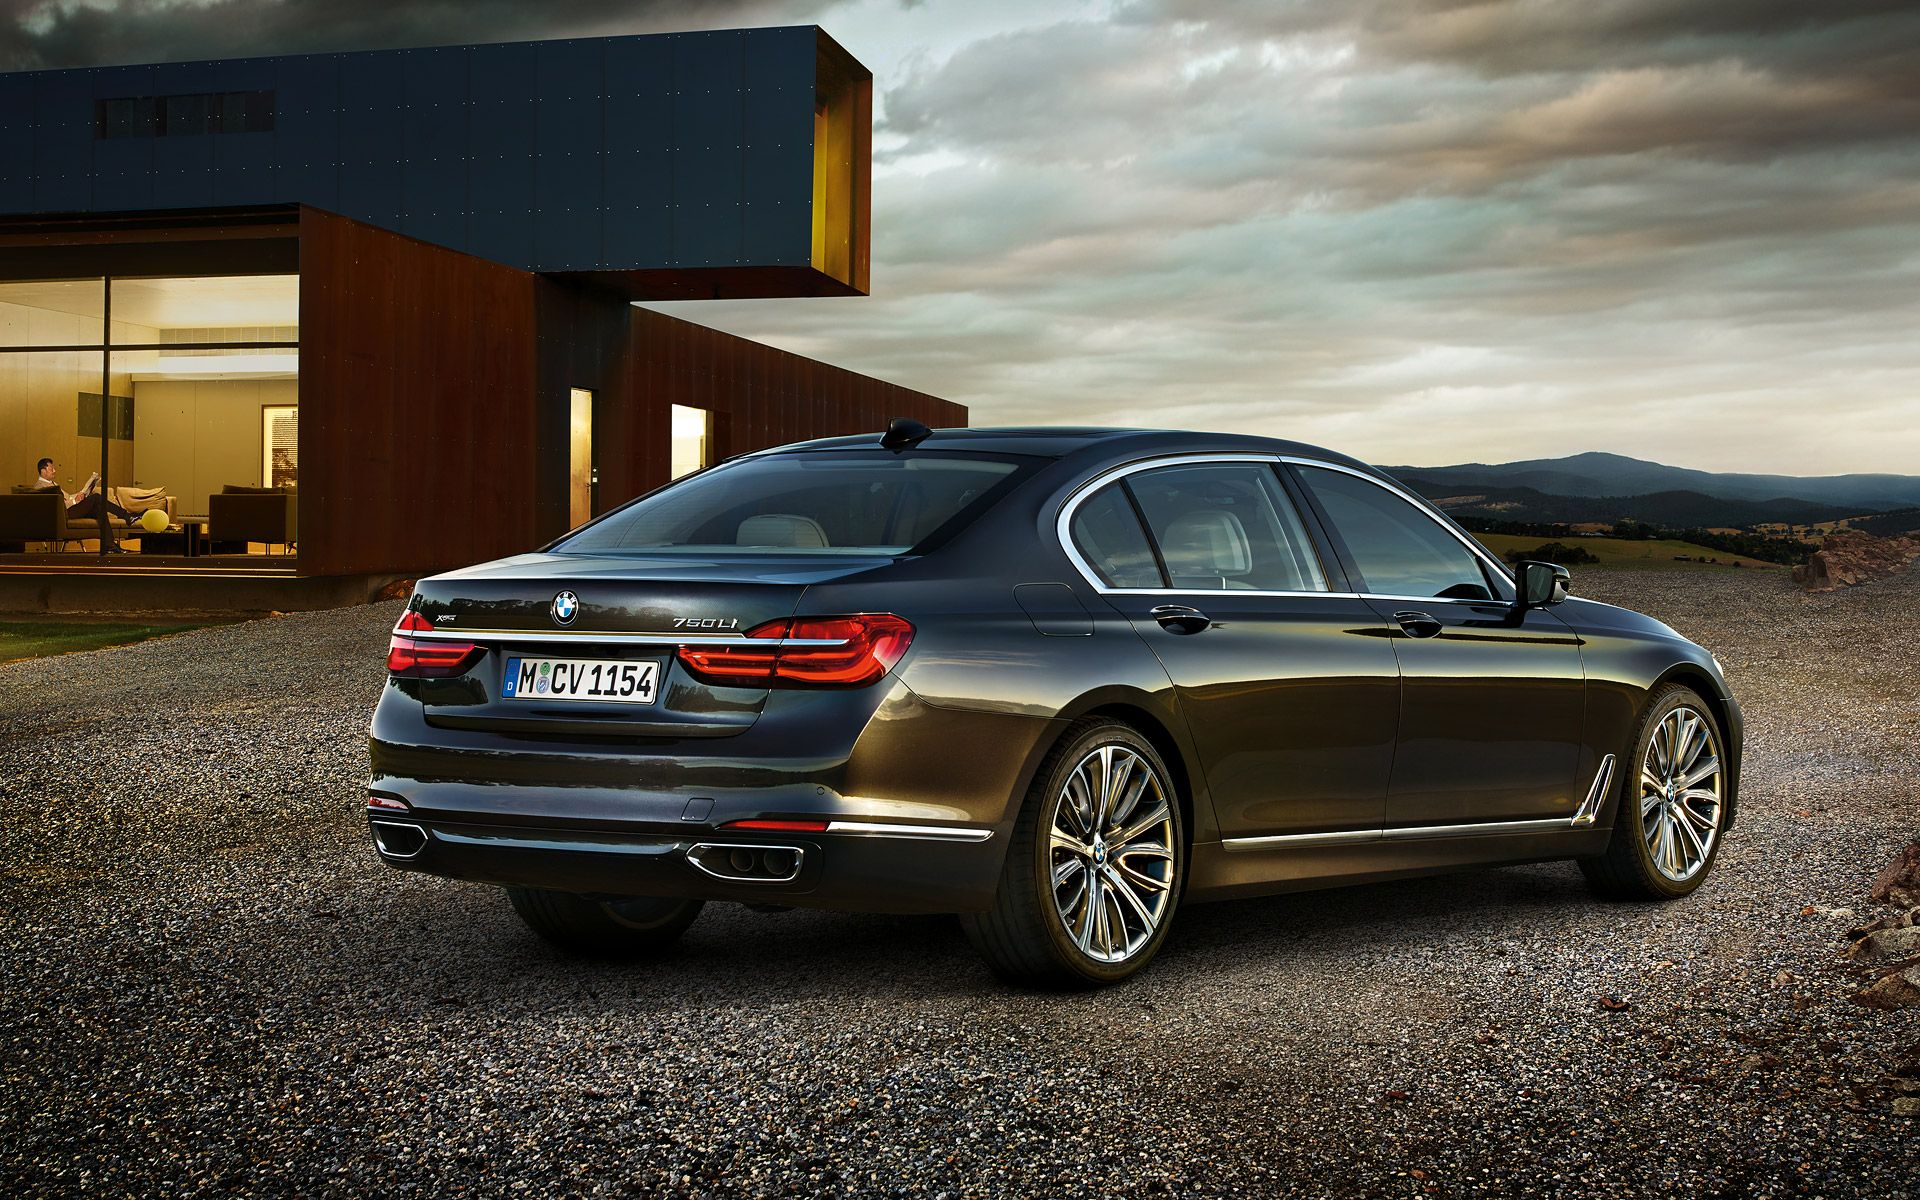 BMW 7 Series Sedan & videos Cars Pinterest